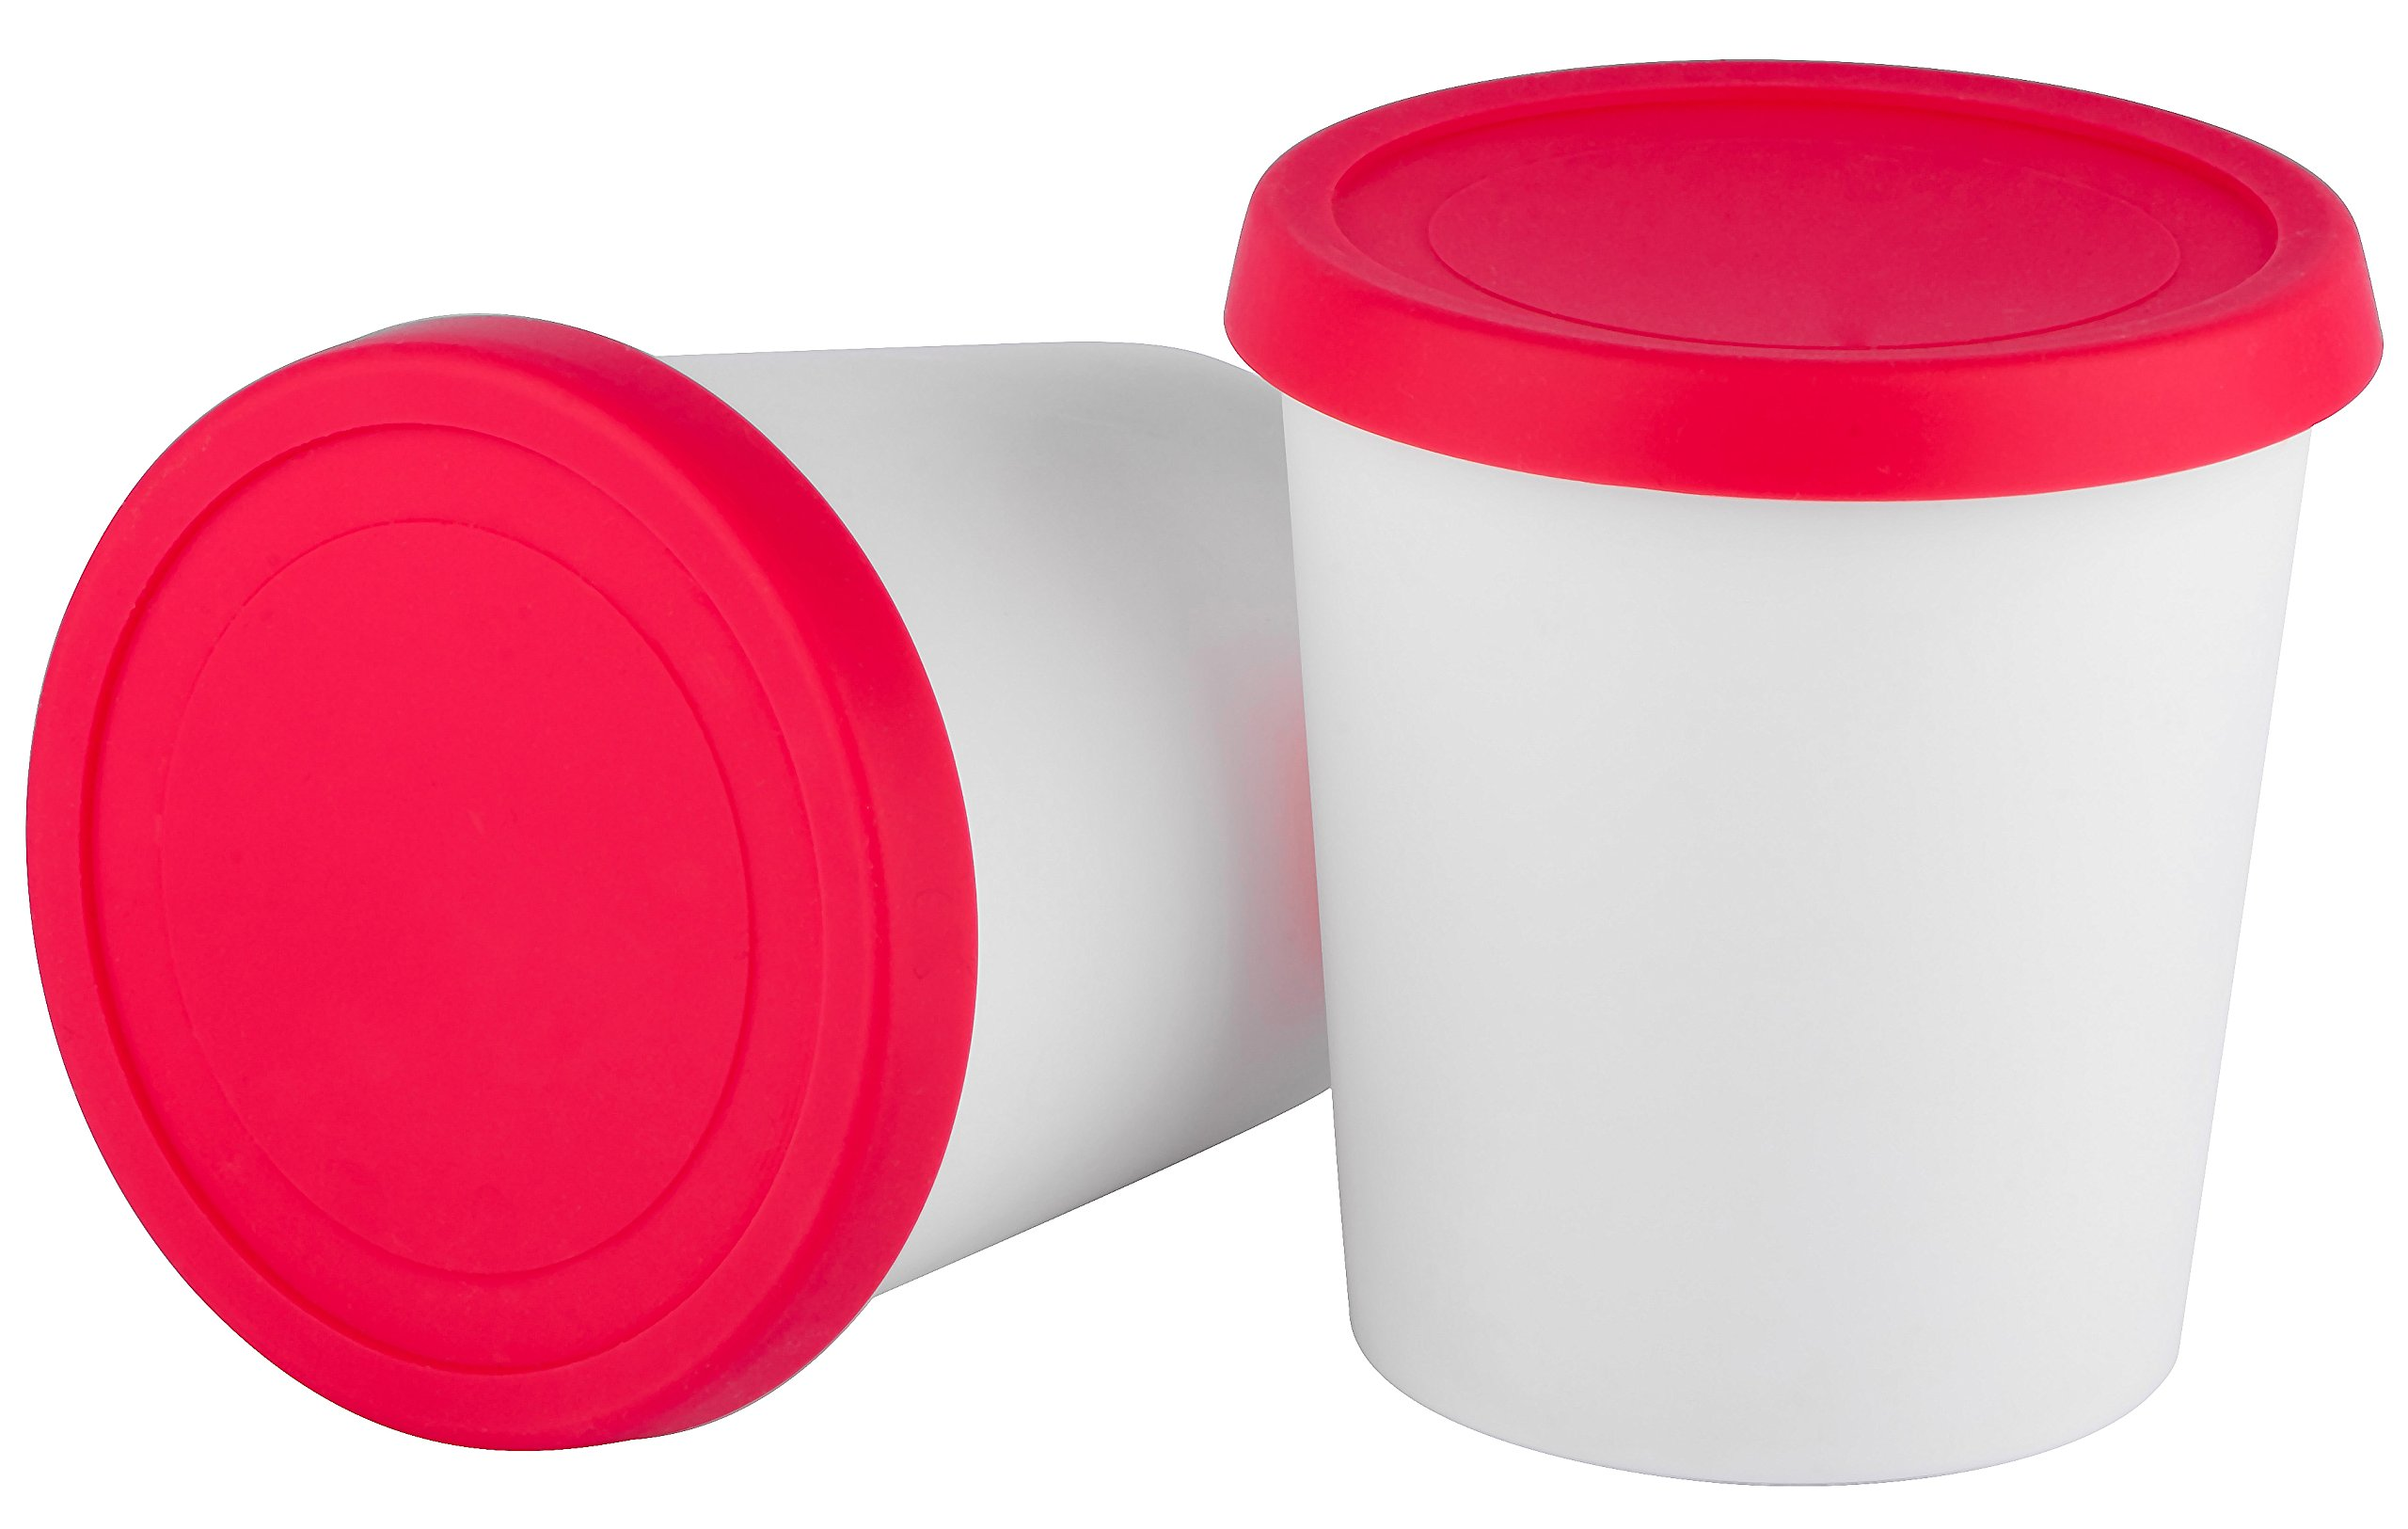 StarPack Home Ice Cream Freezer Storage Containers Set of 2 with Silicone Lids by StarPack Home